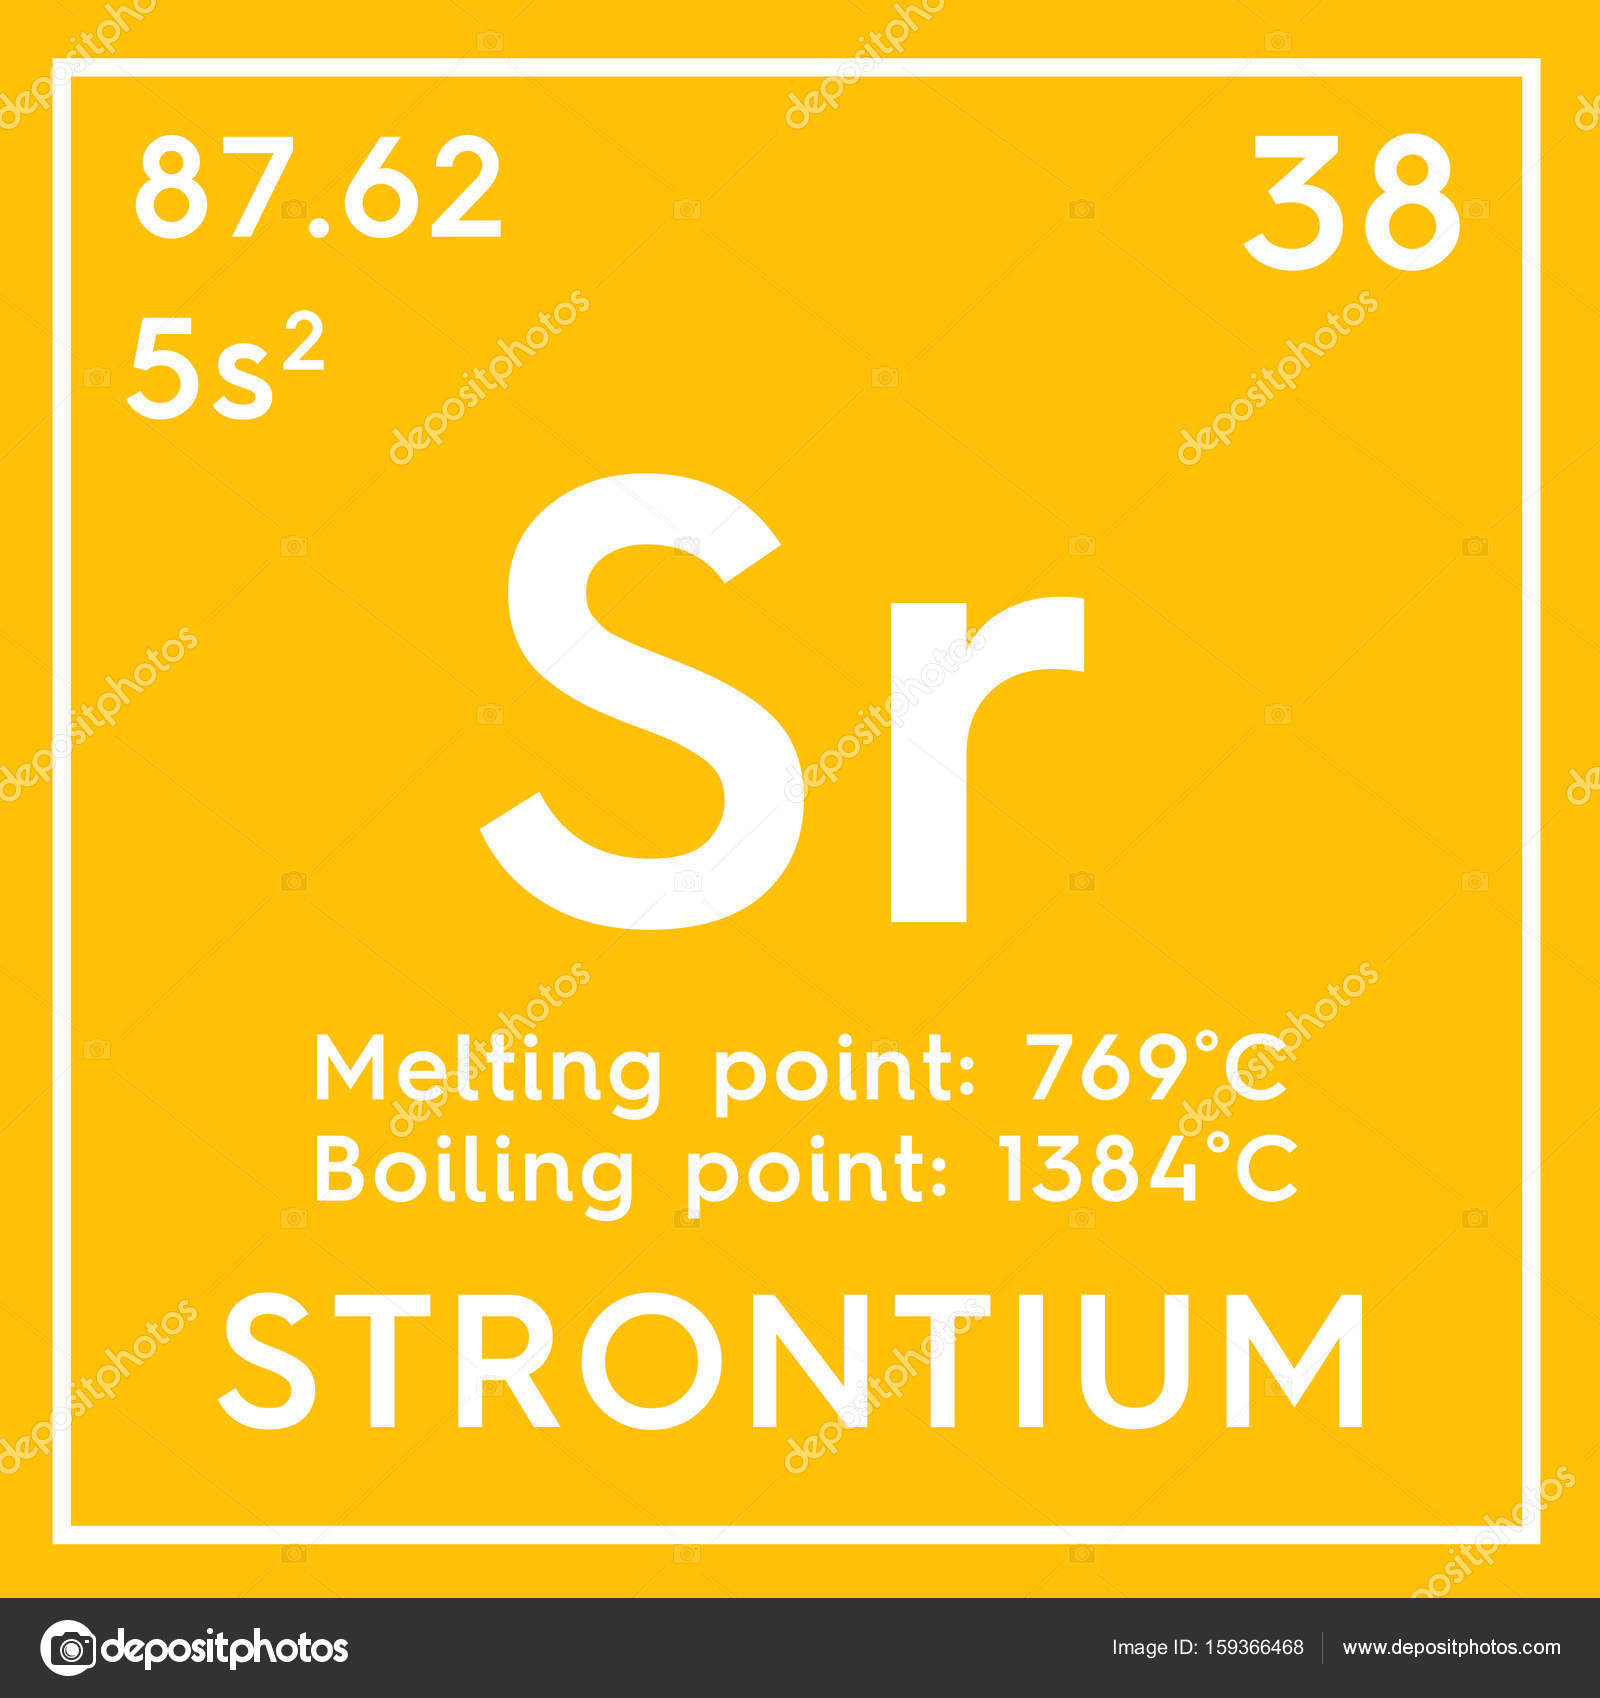 Strontium alkaline earth metals chemical element of mendeleevs alkaline earth metals chemical element of mendeleevs periodic table stock photo urtaz Choice Image